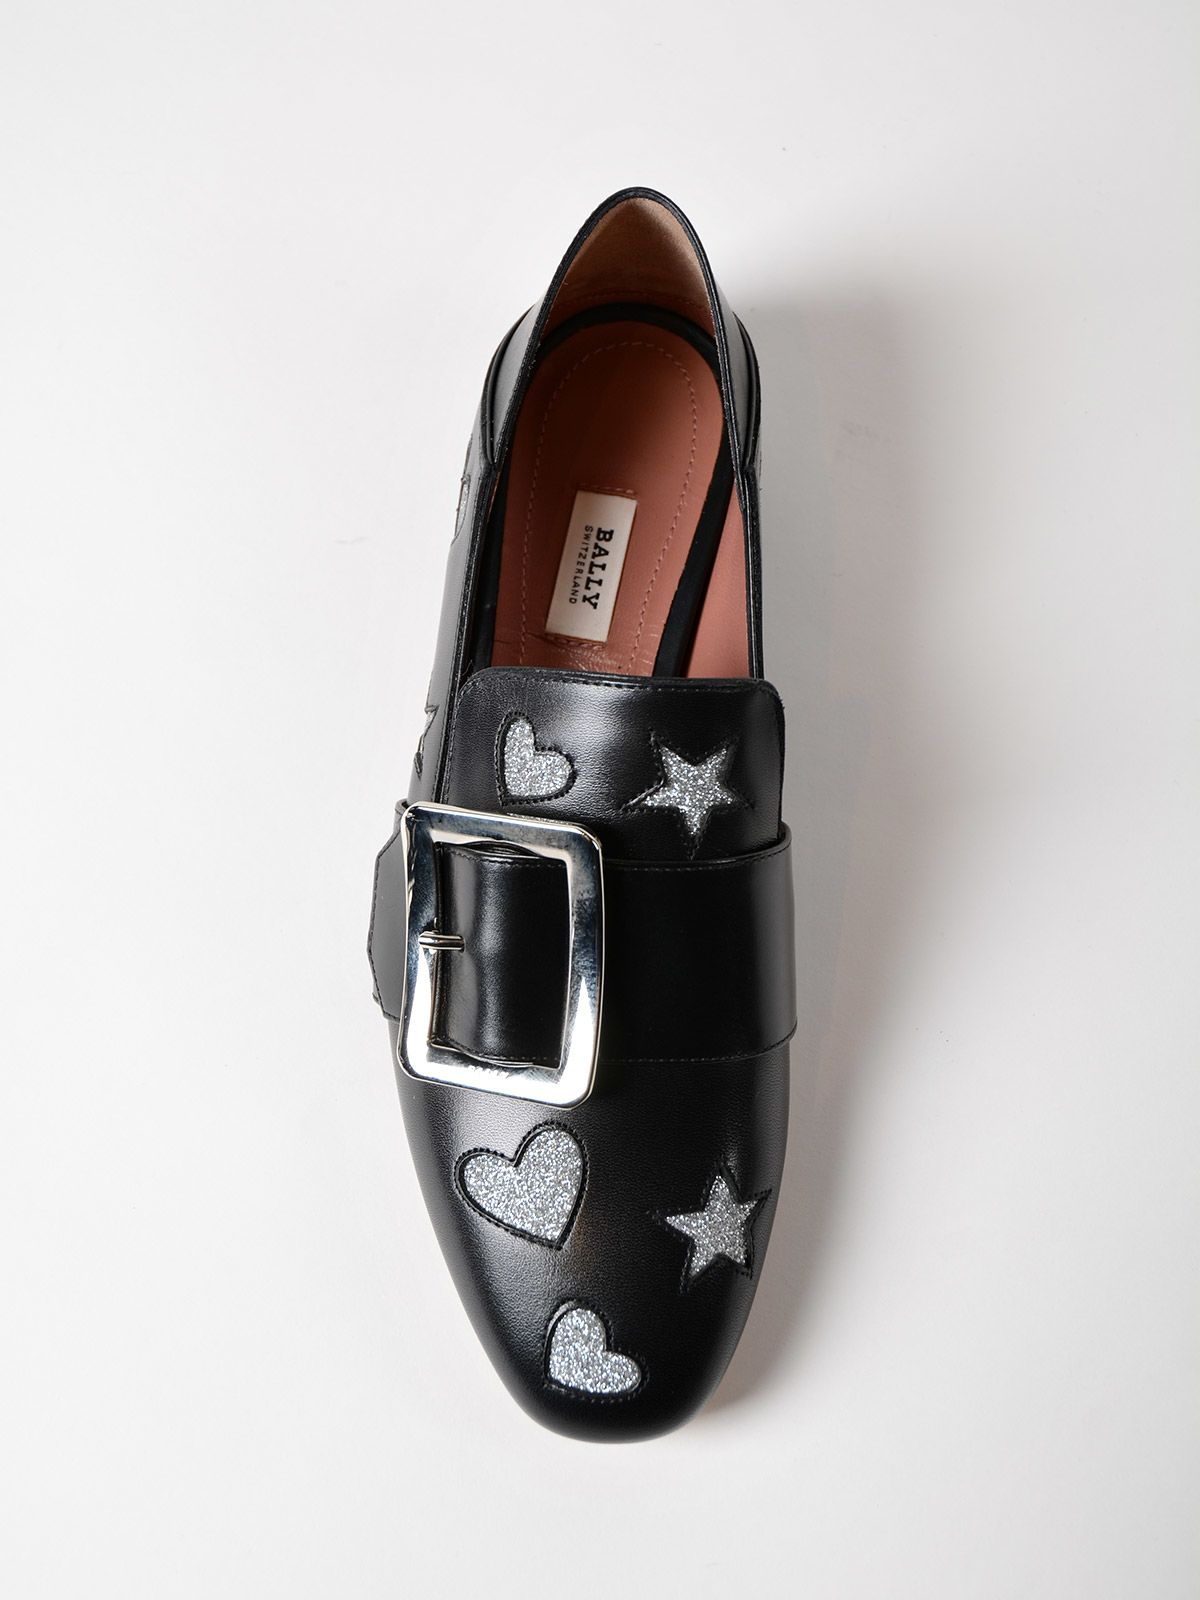 Bally Janelle hearts loafers buy cheap huge surprise PkD0M